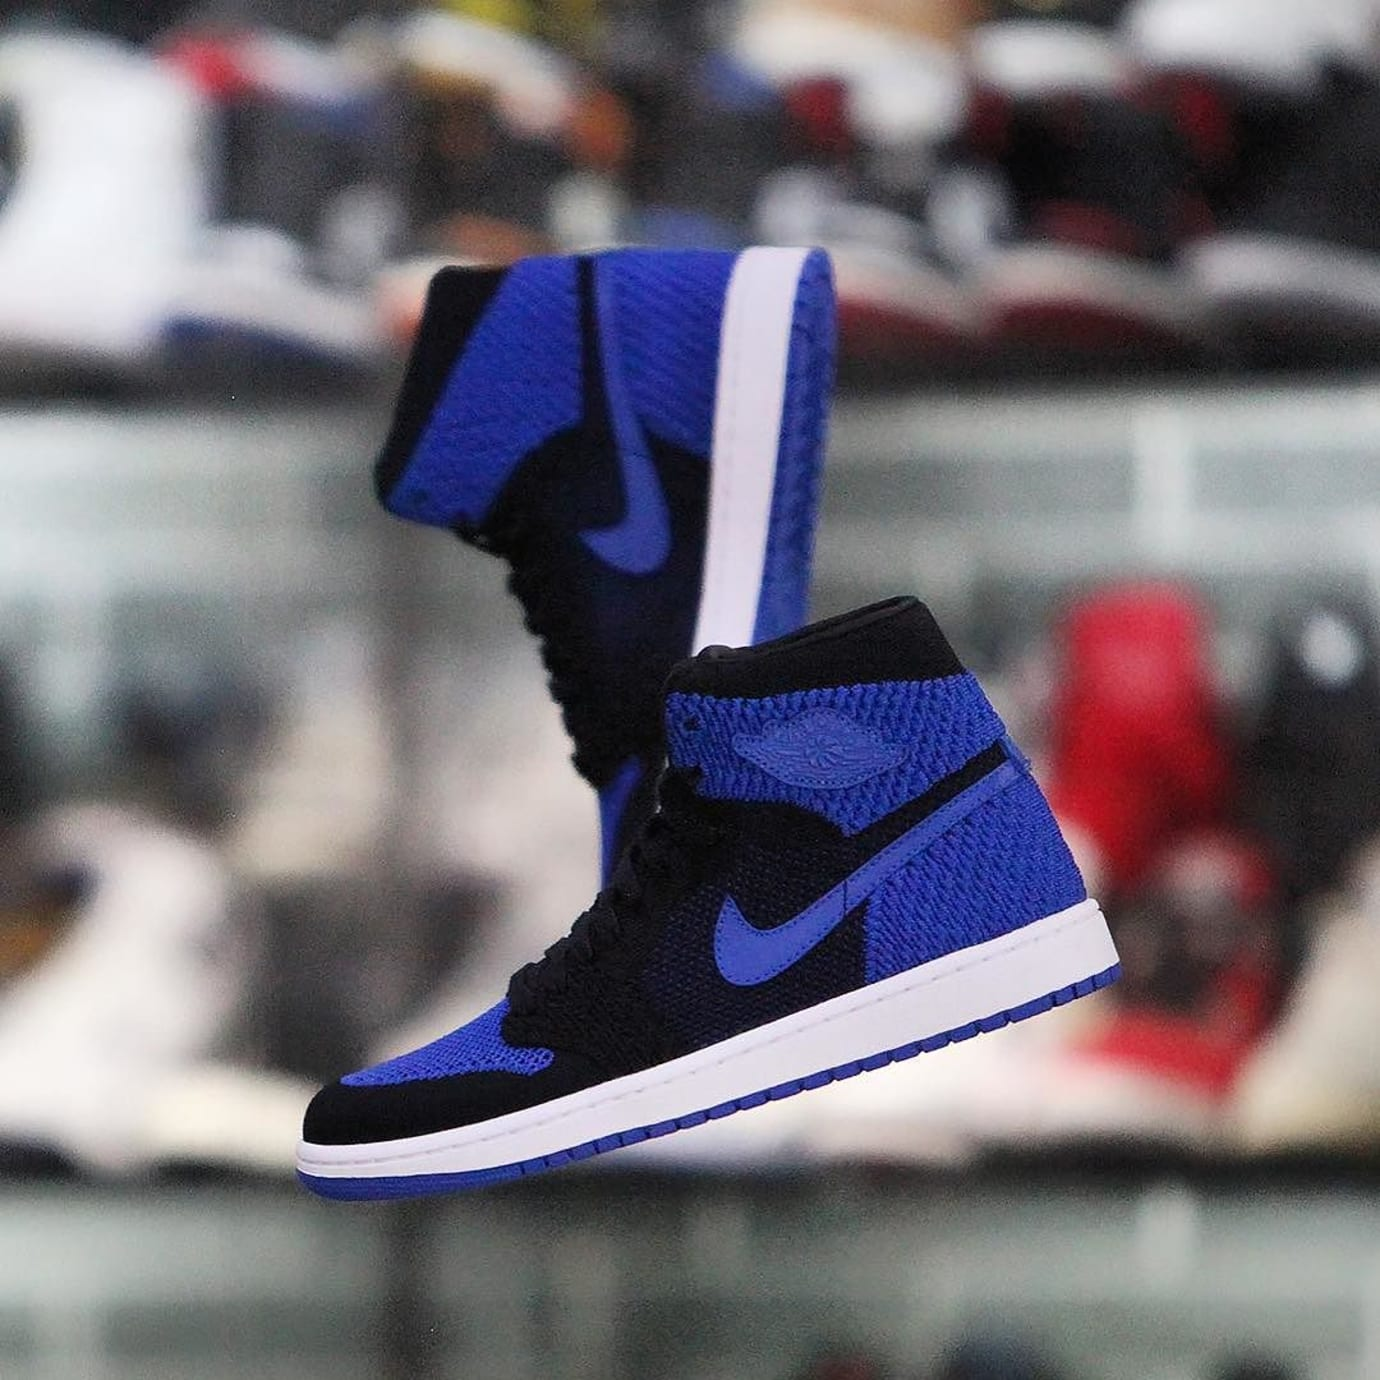 Air Jordan 1 Flyknit Royal Release Date 919704-006 (22)